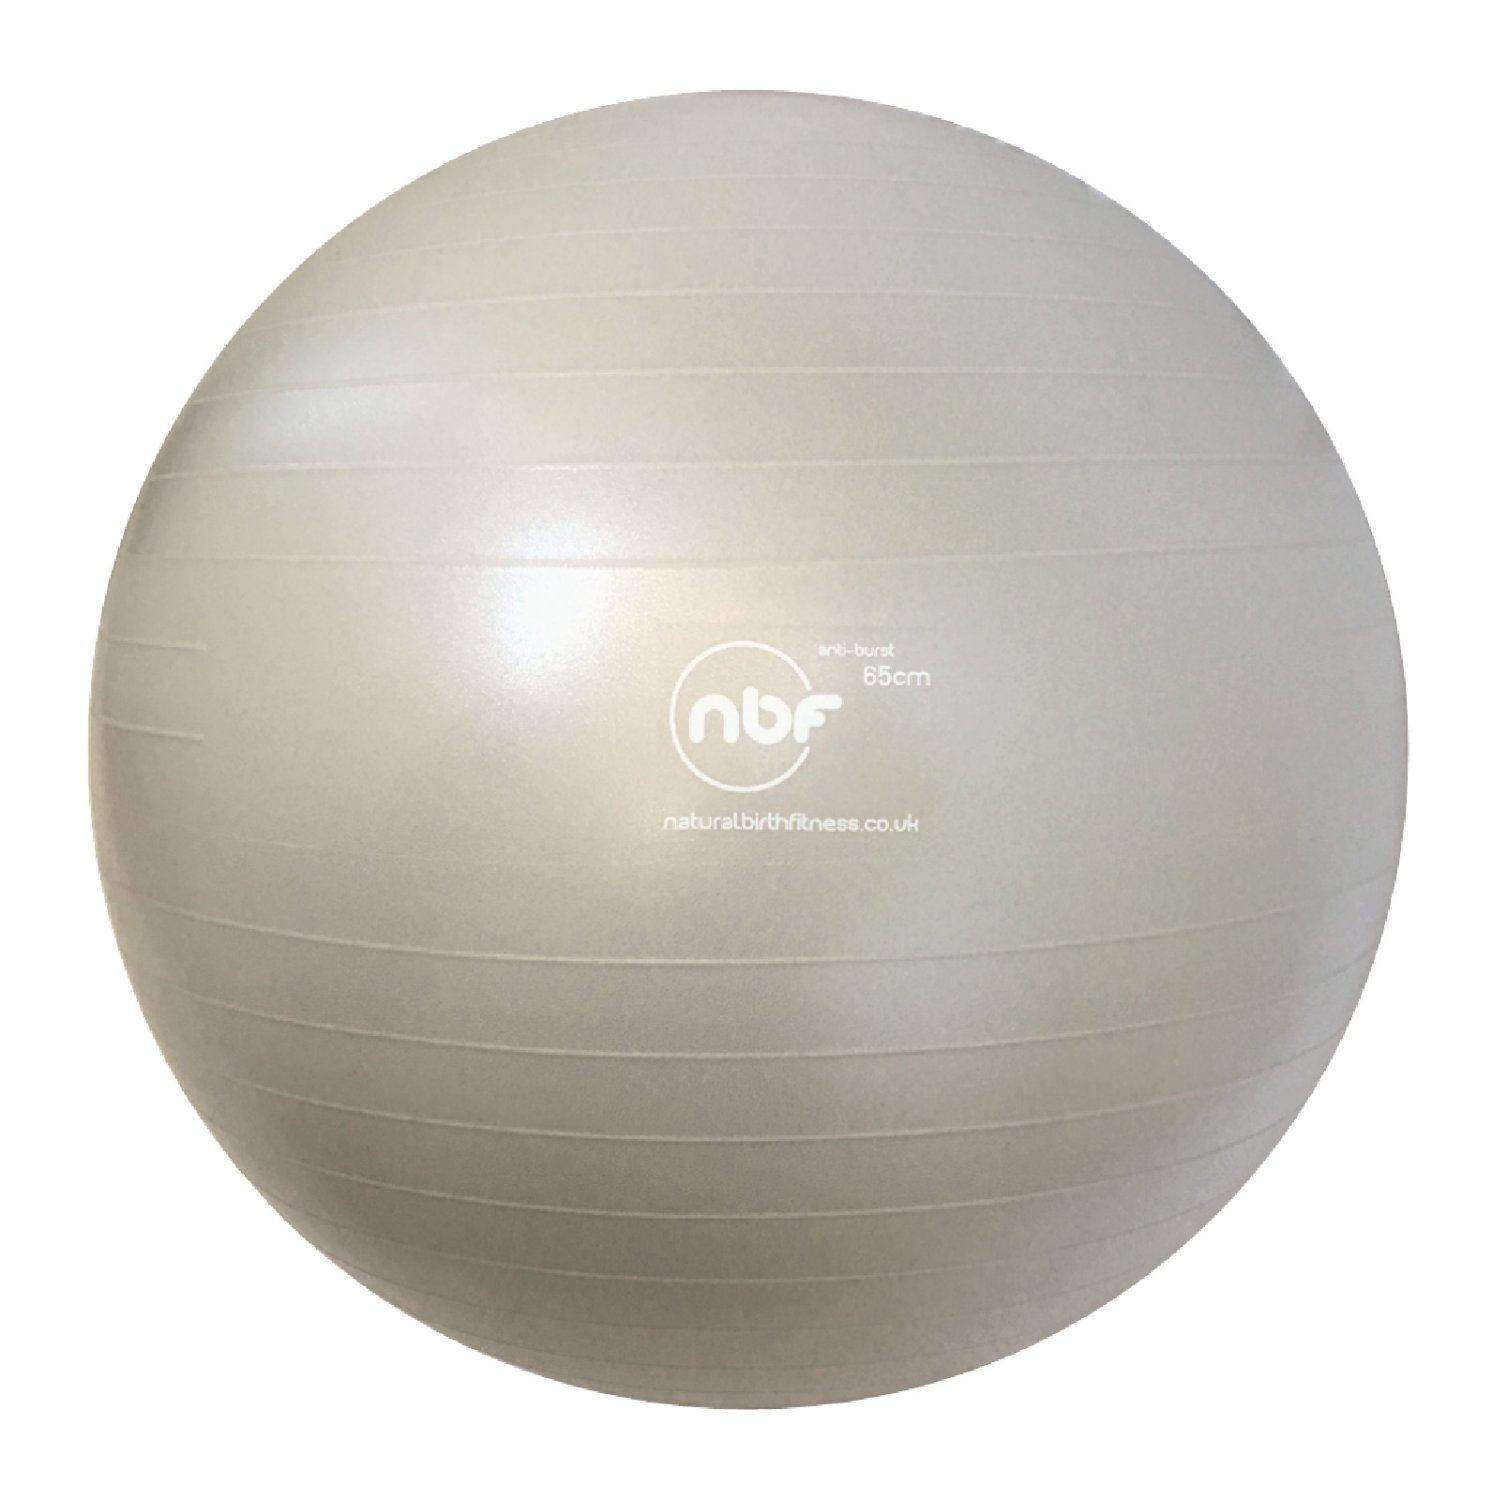 NBF Birth Ball in silver